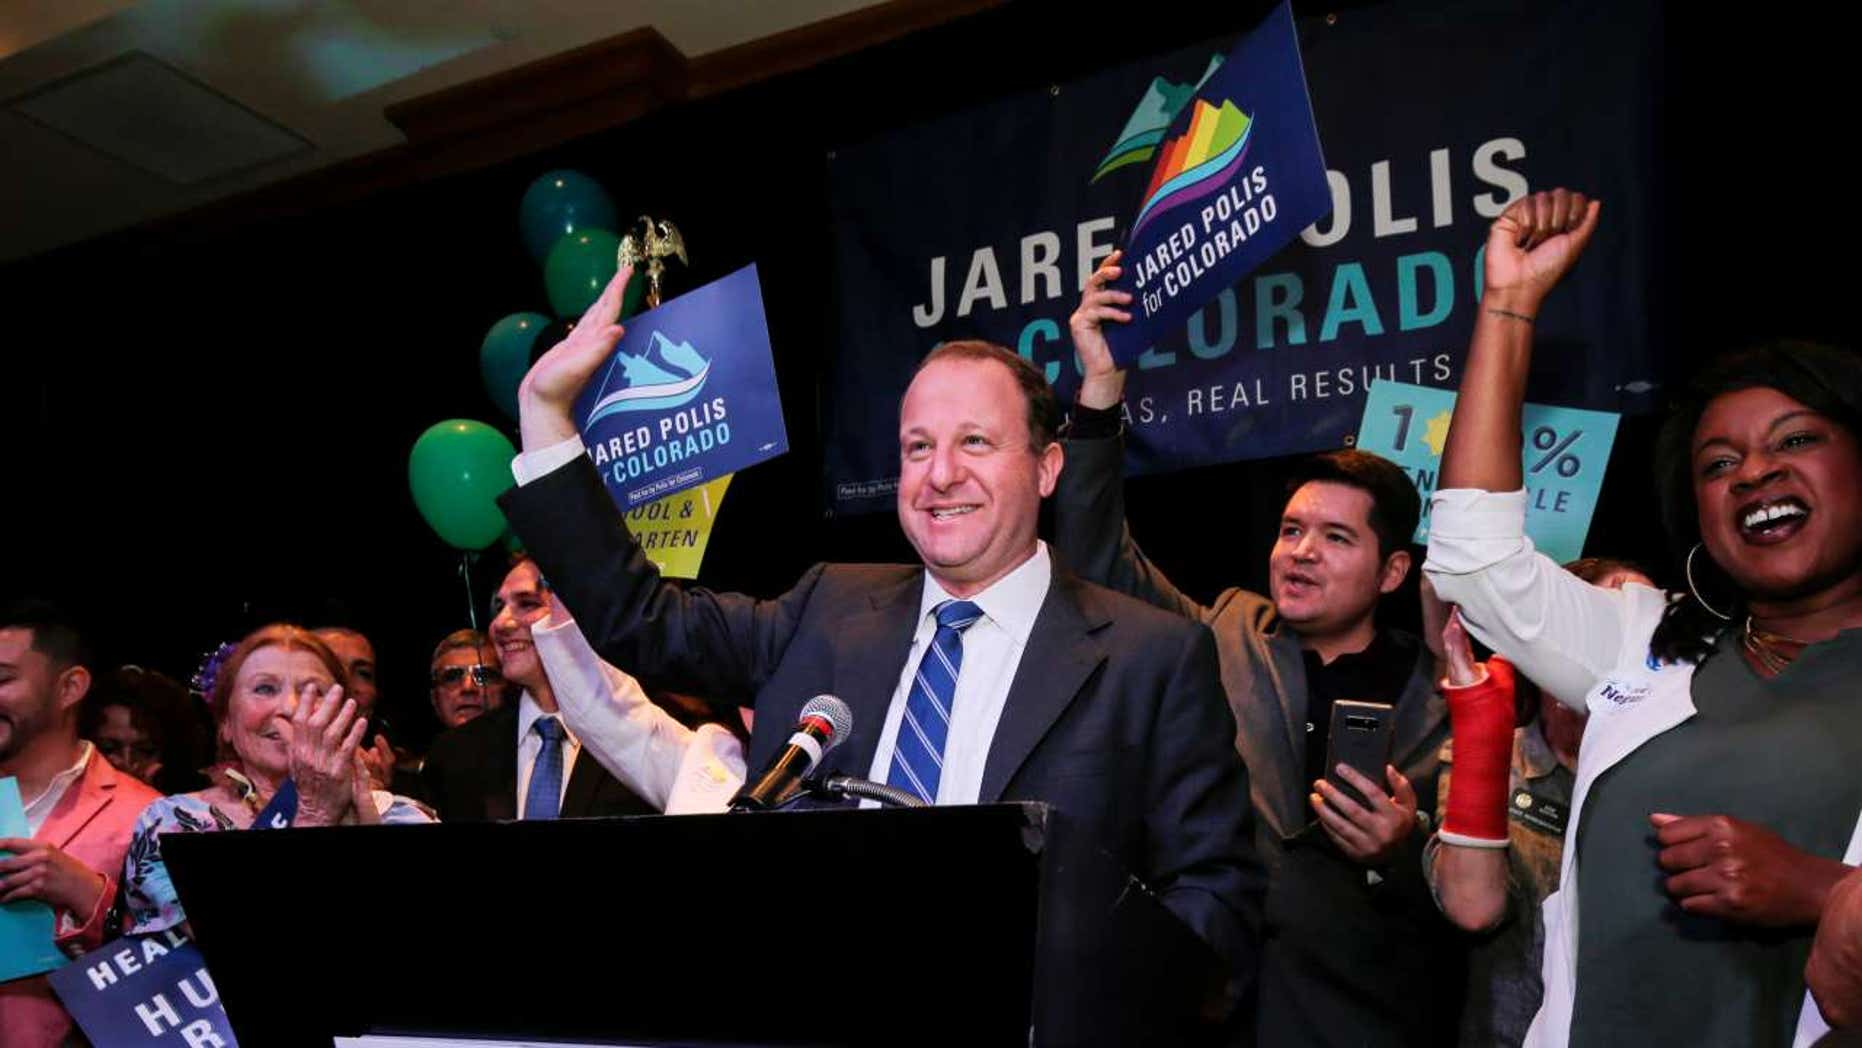 U.S. Rep Jared Polis waves to the crowd while accepting the Democratic nomination for the Colorado governor's race at an election night rally in Broomfield, Colo. , June 26, 2018.